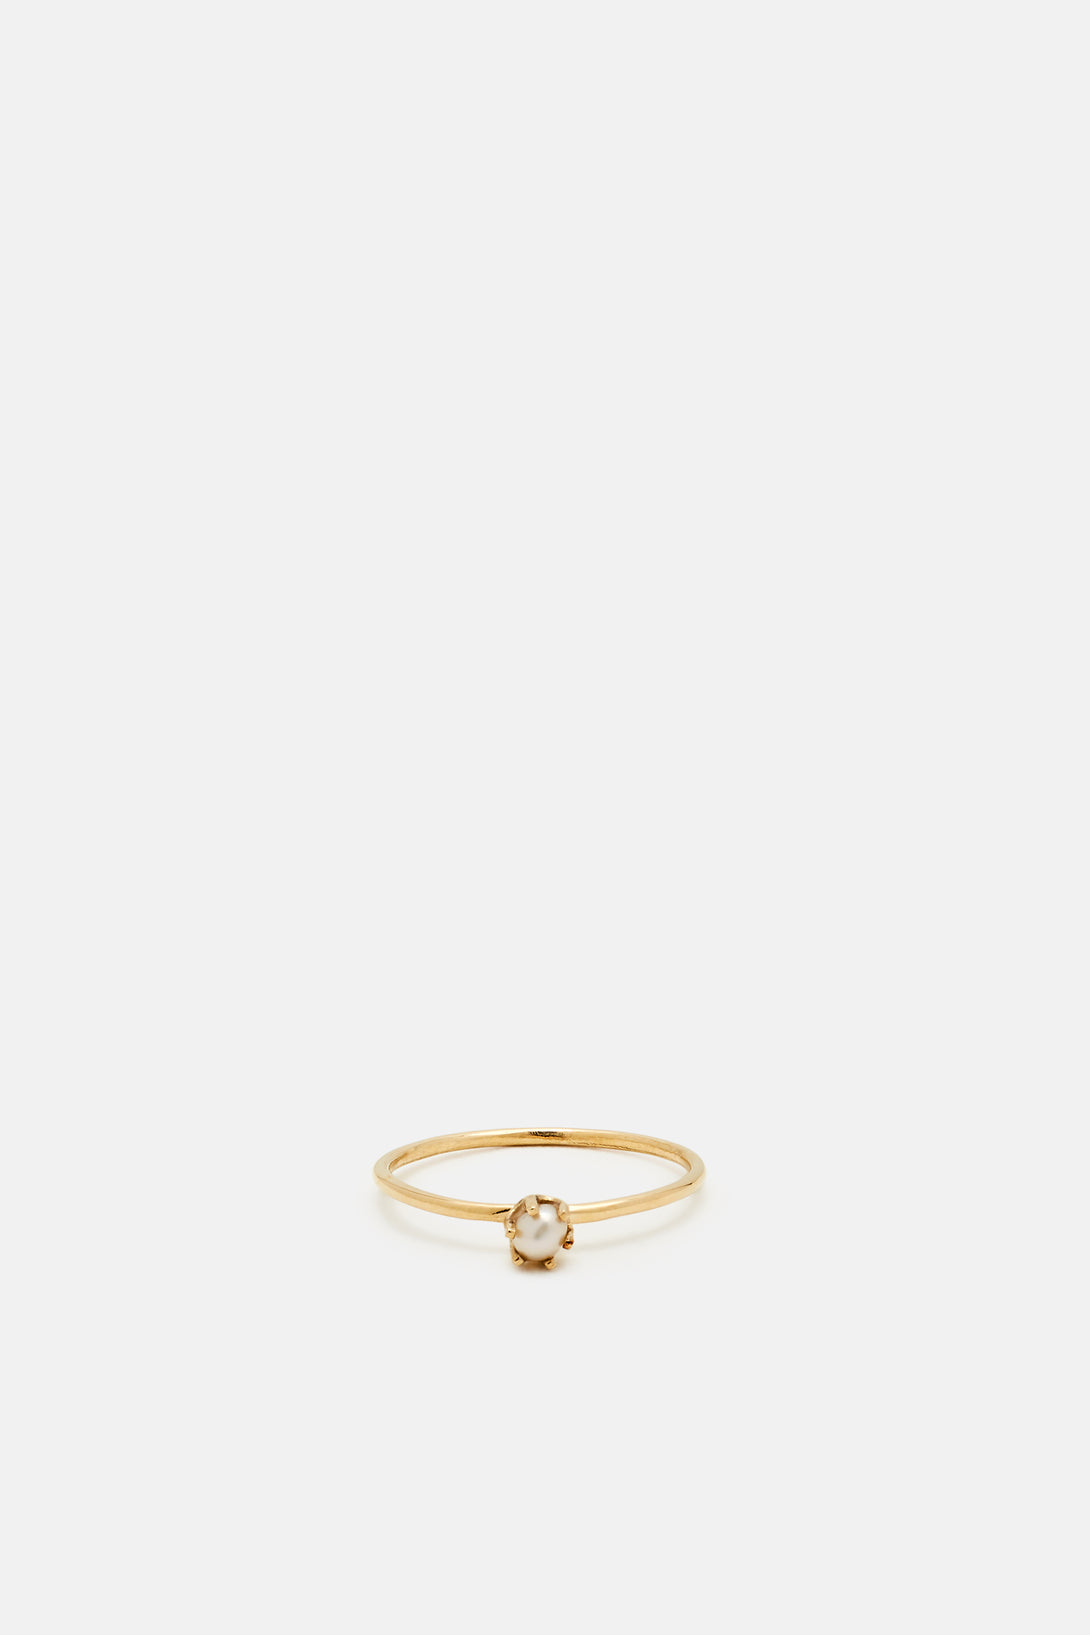 Siren Pinky Ring - Gold/White Pearl